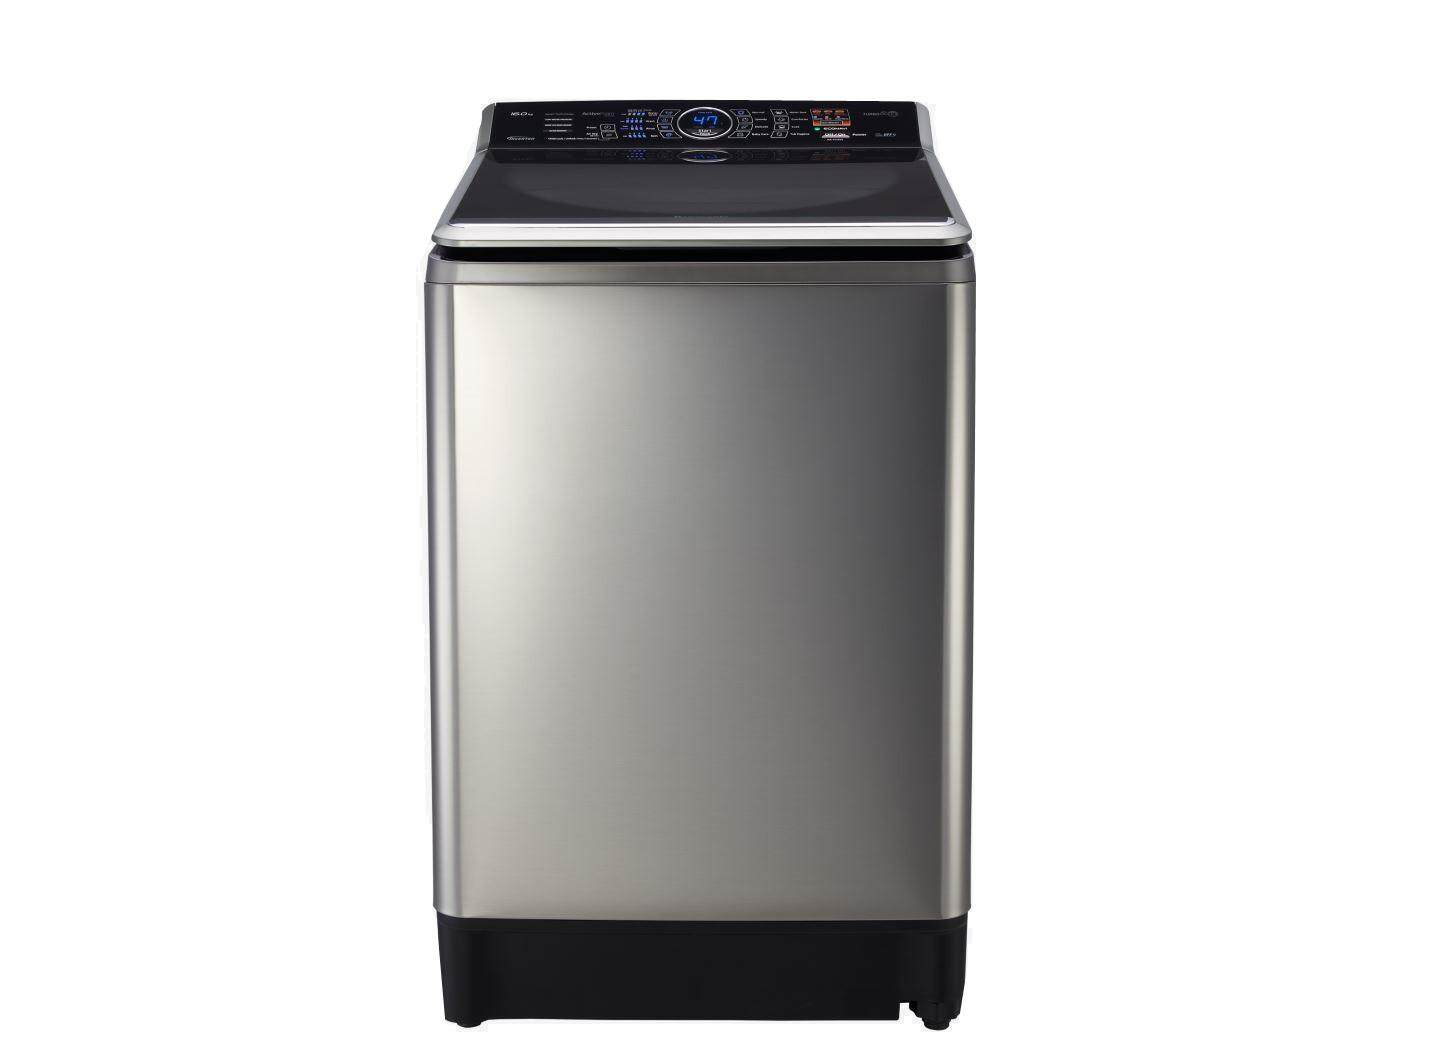 PANASONIC TOP LOAD WASHING MACHINE 16KG NA-FS16V7SRT